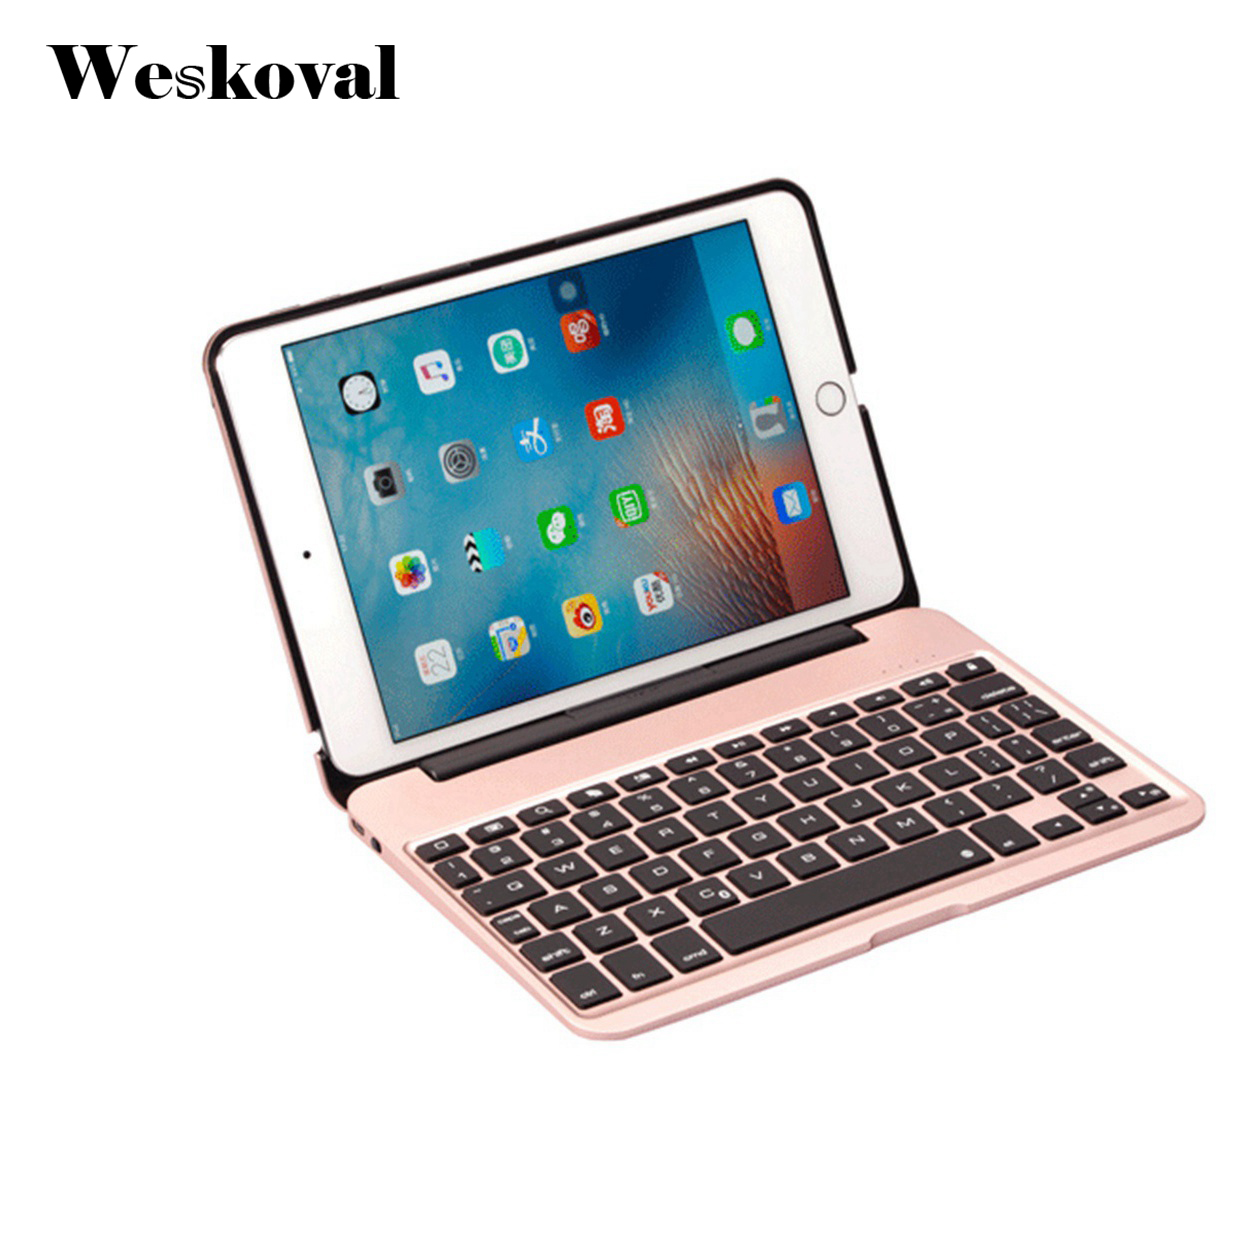 Wireless Keyboard For iPad Mini 4 Bluetooth Case For iPad Mini 4 7.9 inch Tablet Aluminum Alloy Stand Cover Flip Capa +Stylus laptop keyboard for hp for envy 4 1014tu 4 1014tx 4 1015tu 4 1015tx 4 1018tu backlit northwest africa 692759 fp1 mp 11m6j698w